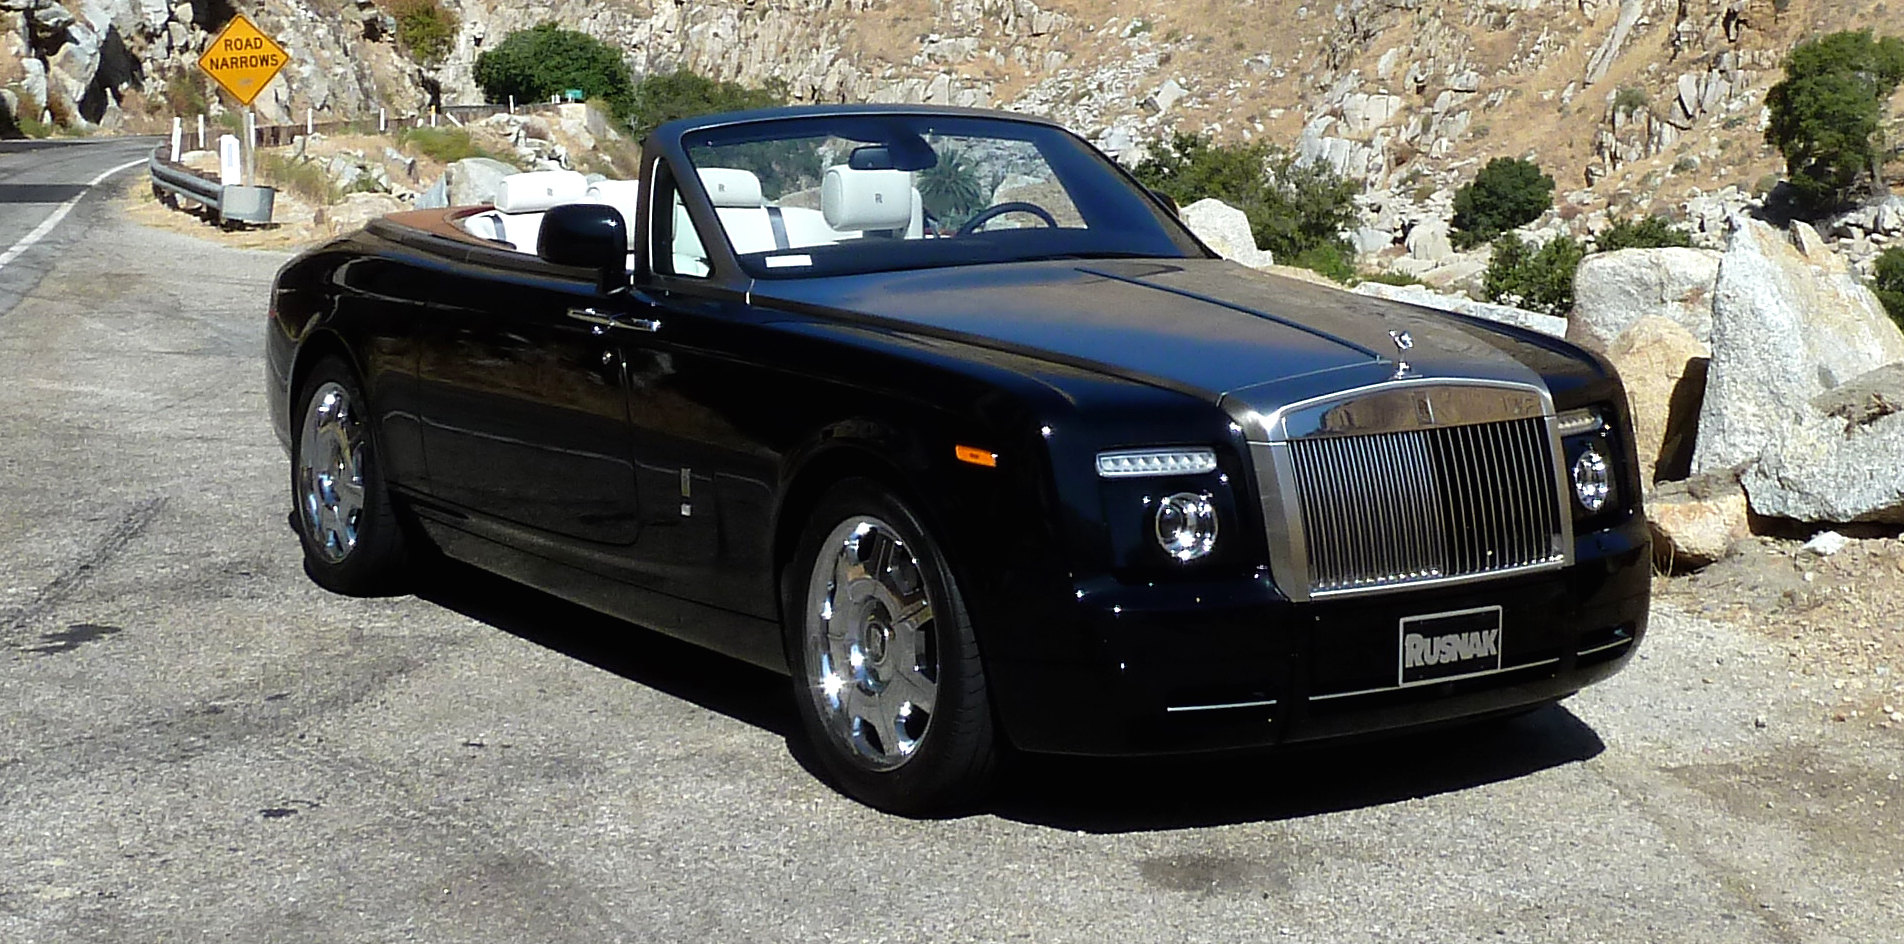 l histoire de rolls royce en 10 faits int ressants catawiki. Black Bedroom Furniture Sets. Home Design Ideas